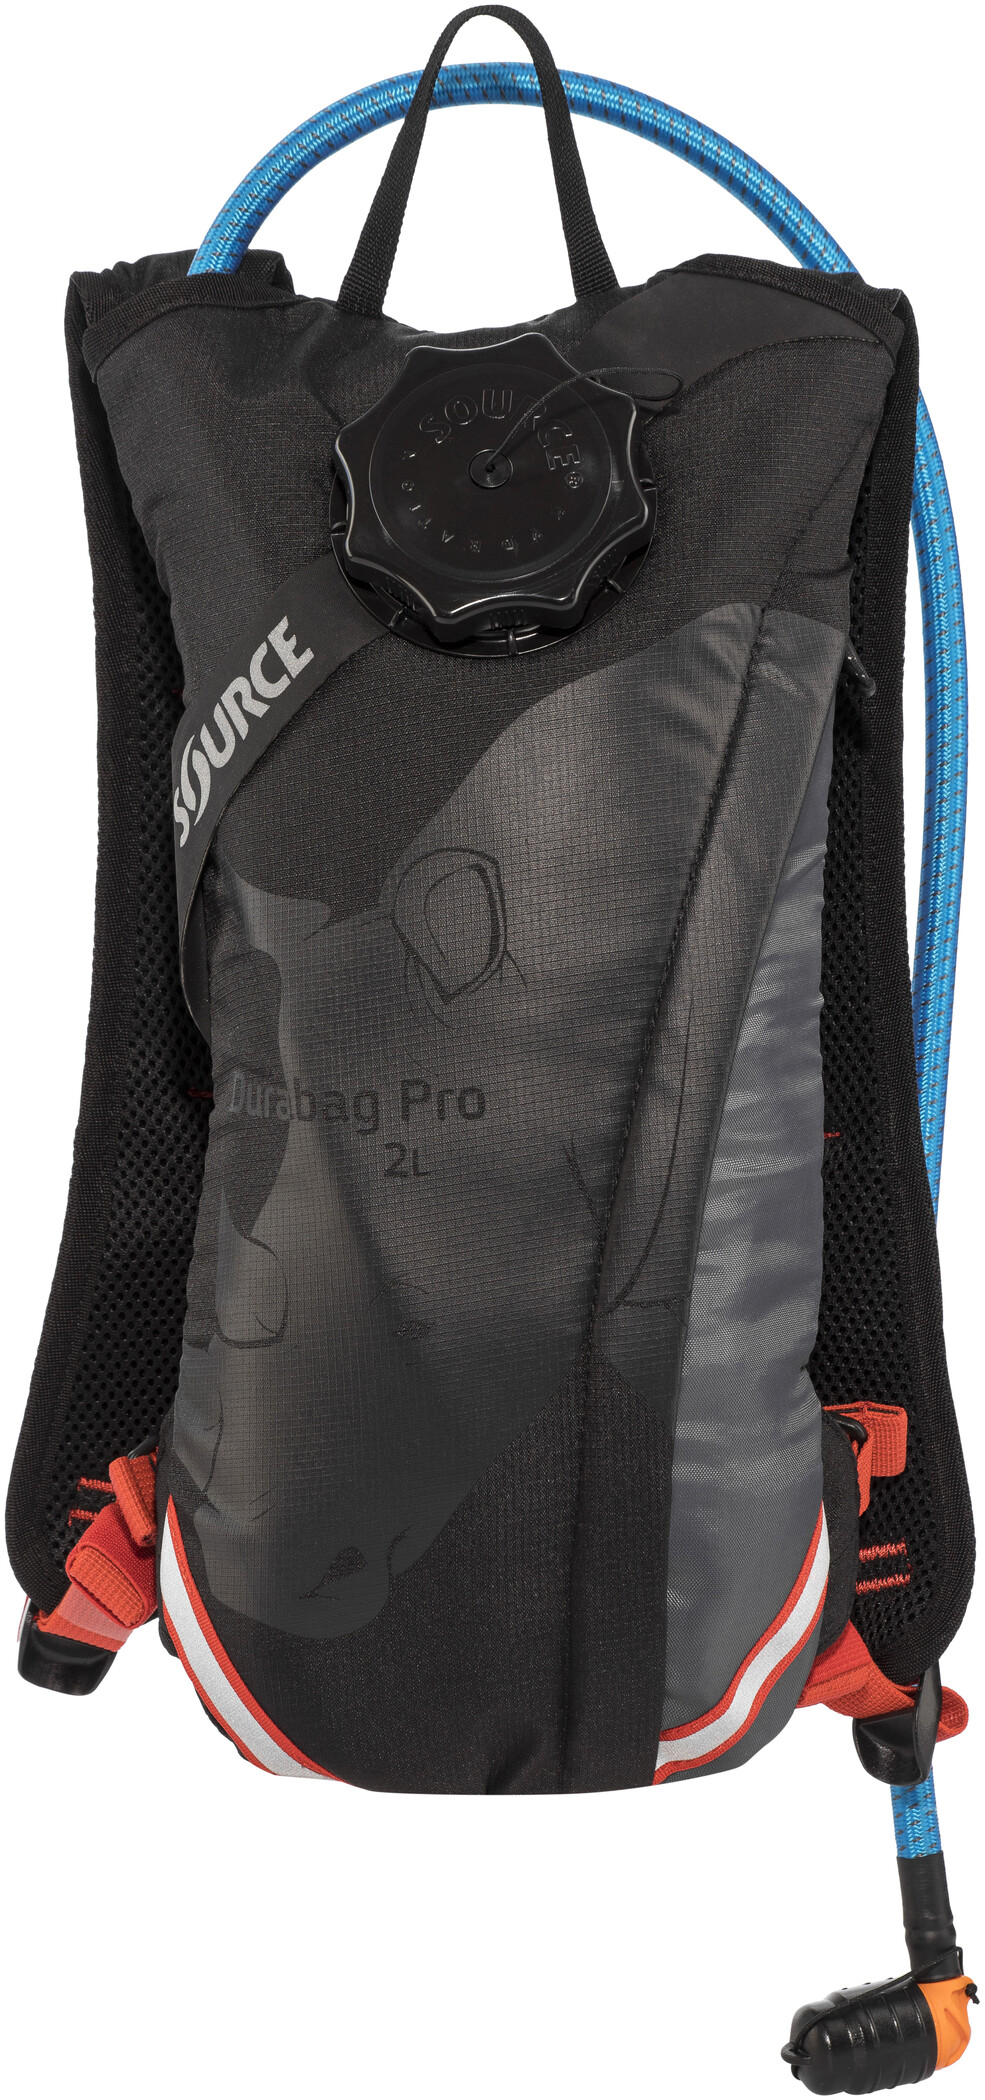 SOURCE Durabag Pro Hydration Pack 2L bottle, gray/black/fiesta (2019) | Drikkedunke